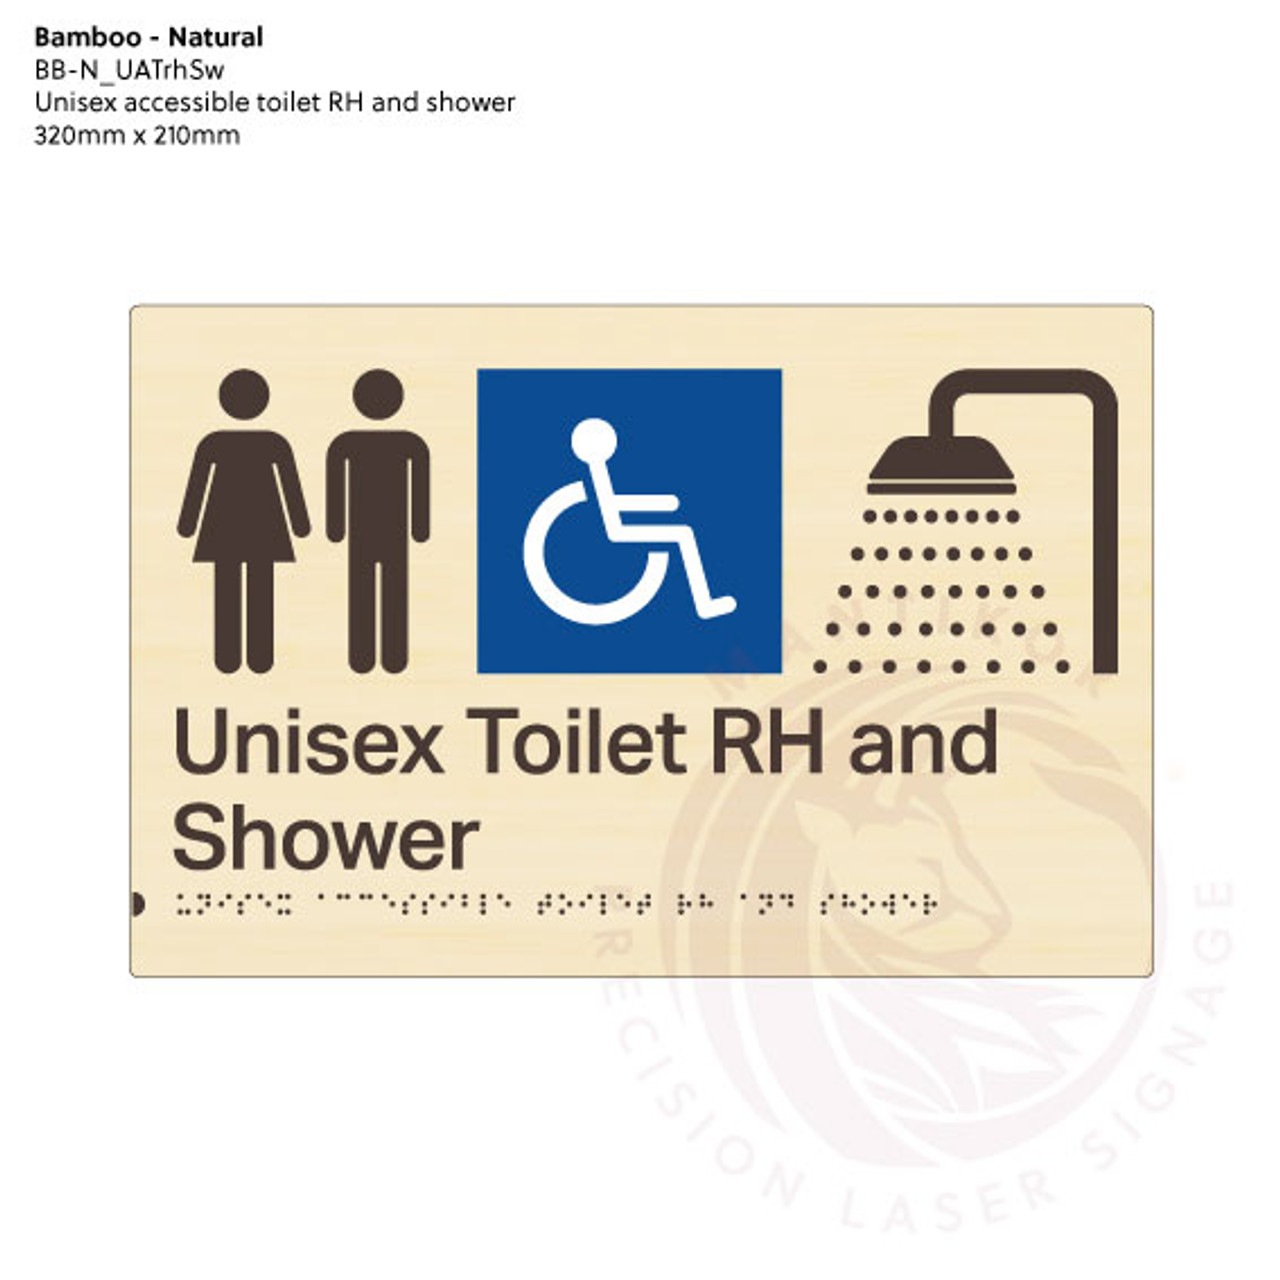 Natural Bamboo Tactile Braille Signs - Unisex Toilet RH and Shower